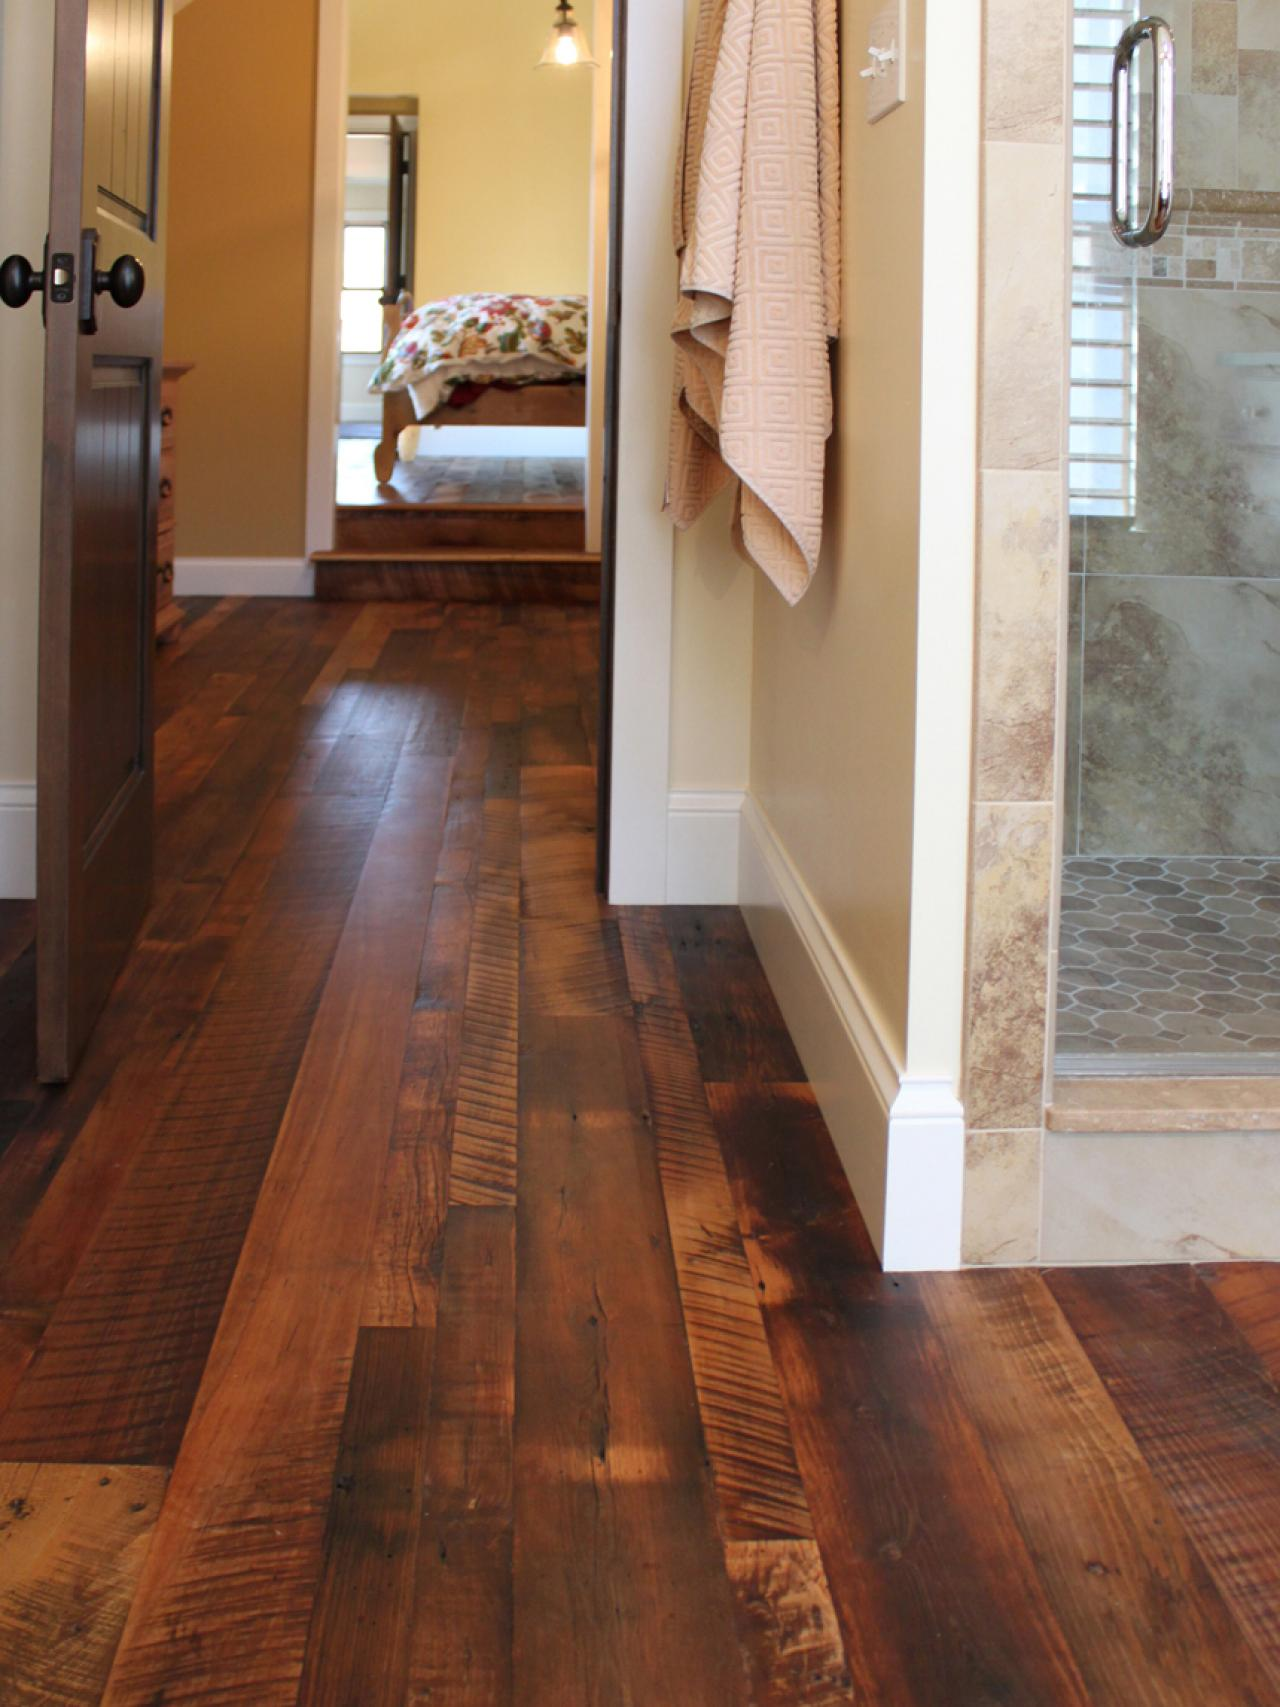 10 stunning hardwood flooring options interior design for Wood flooring choices